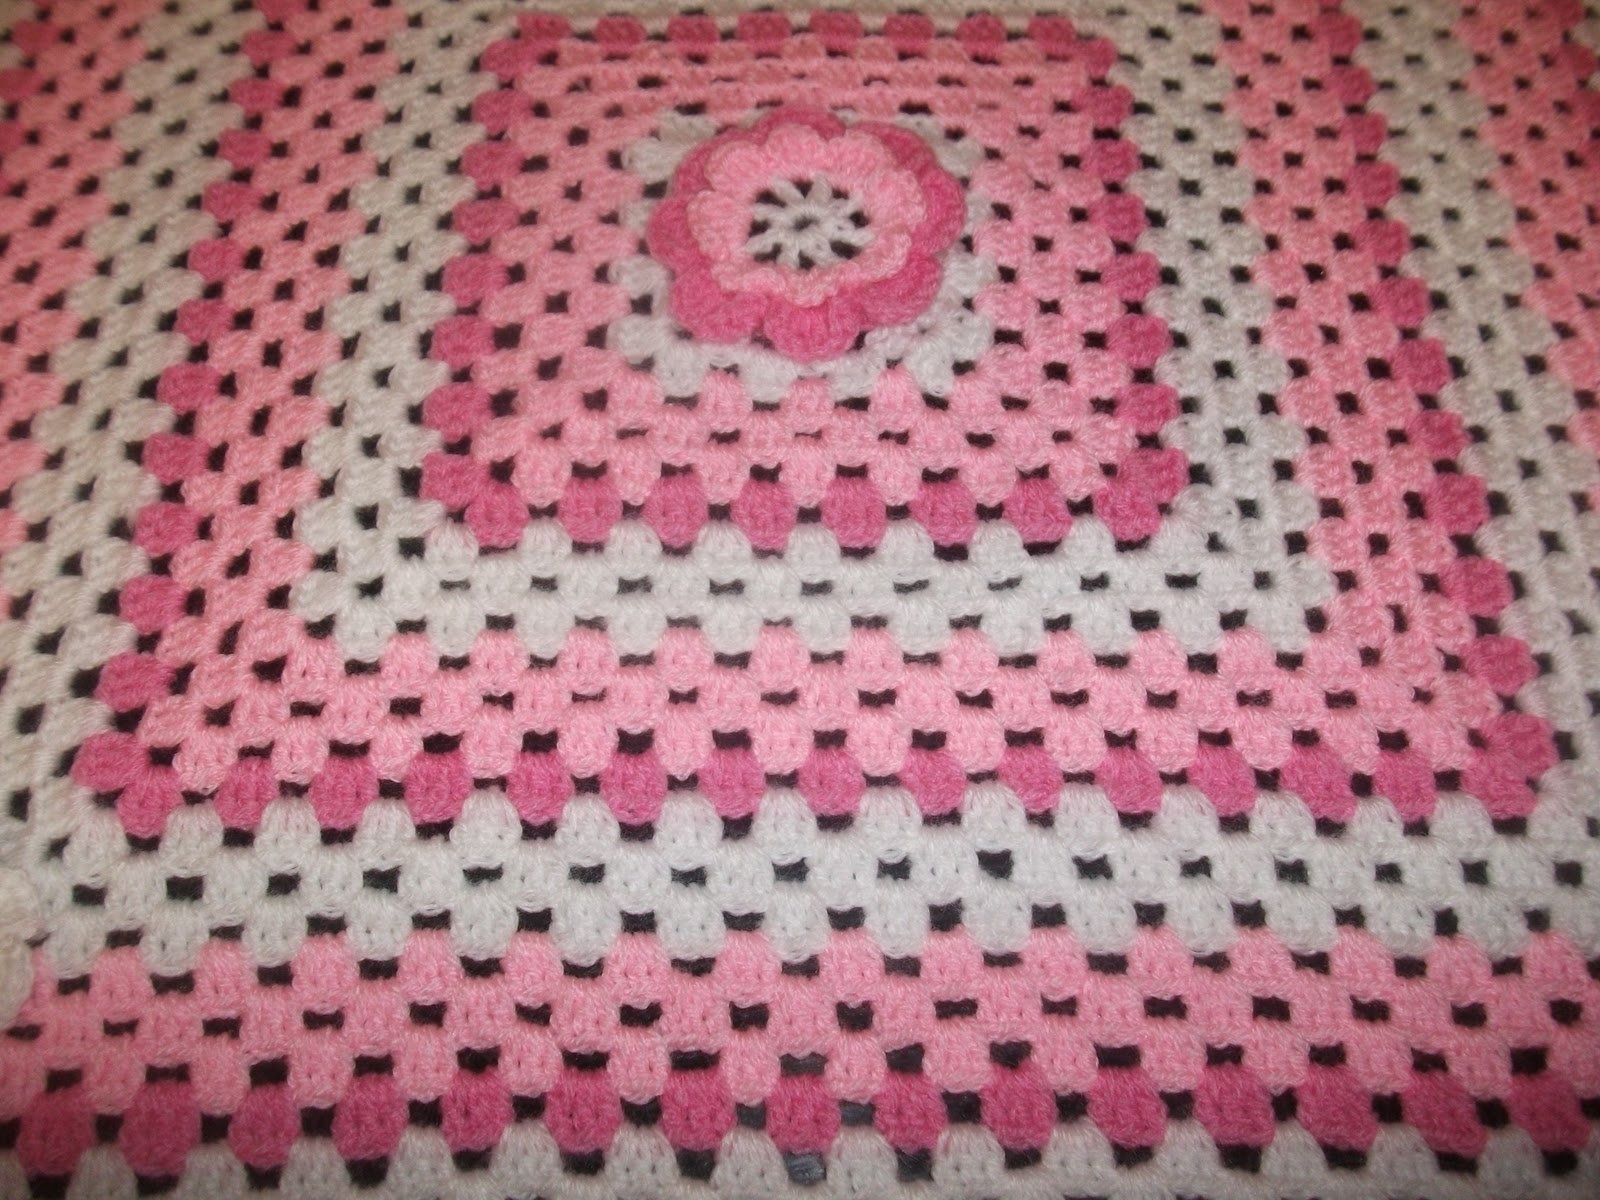 Crochet Baby Blanket : Helens Colourful Crochet Blankets: New baby girl pink crochet blanket